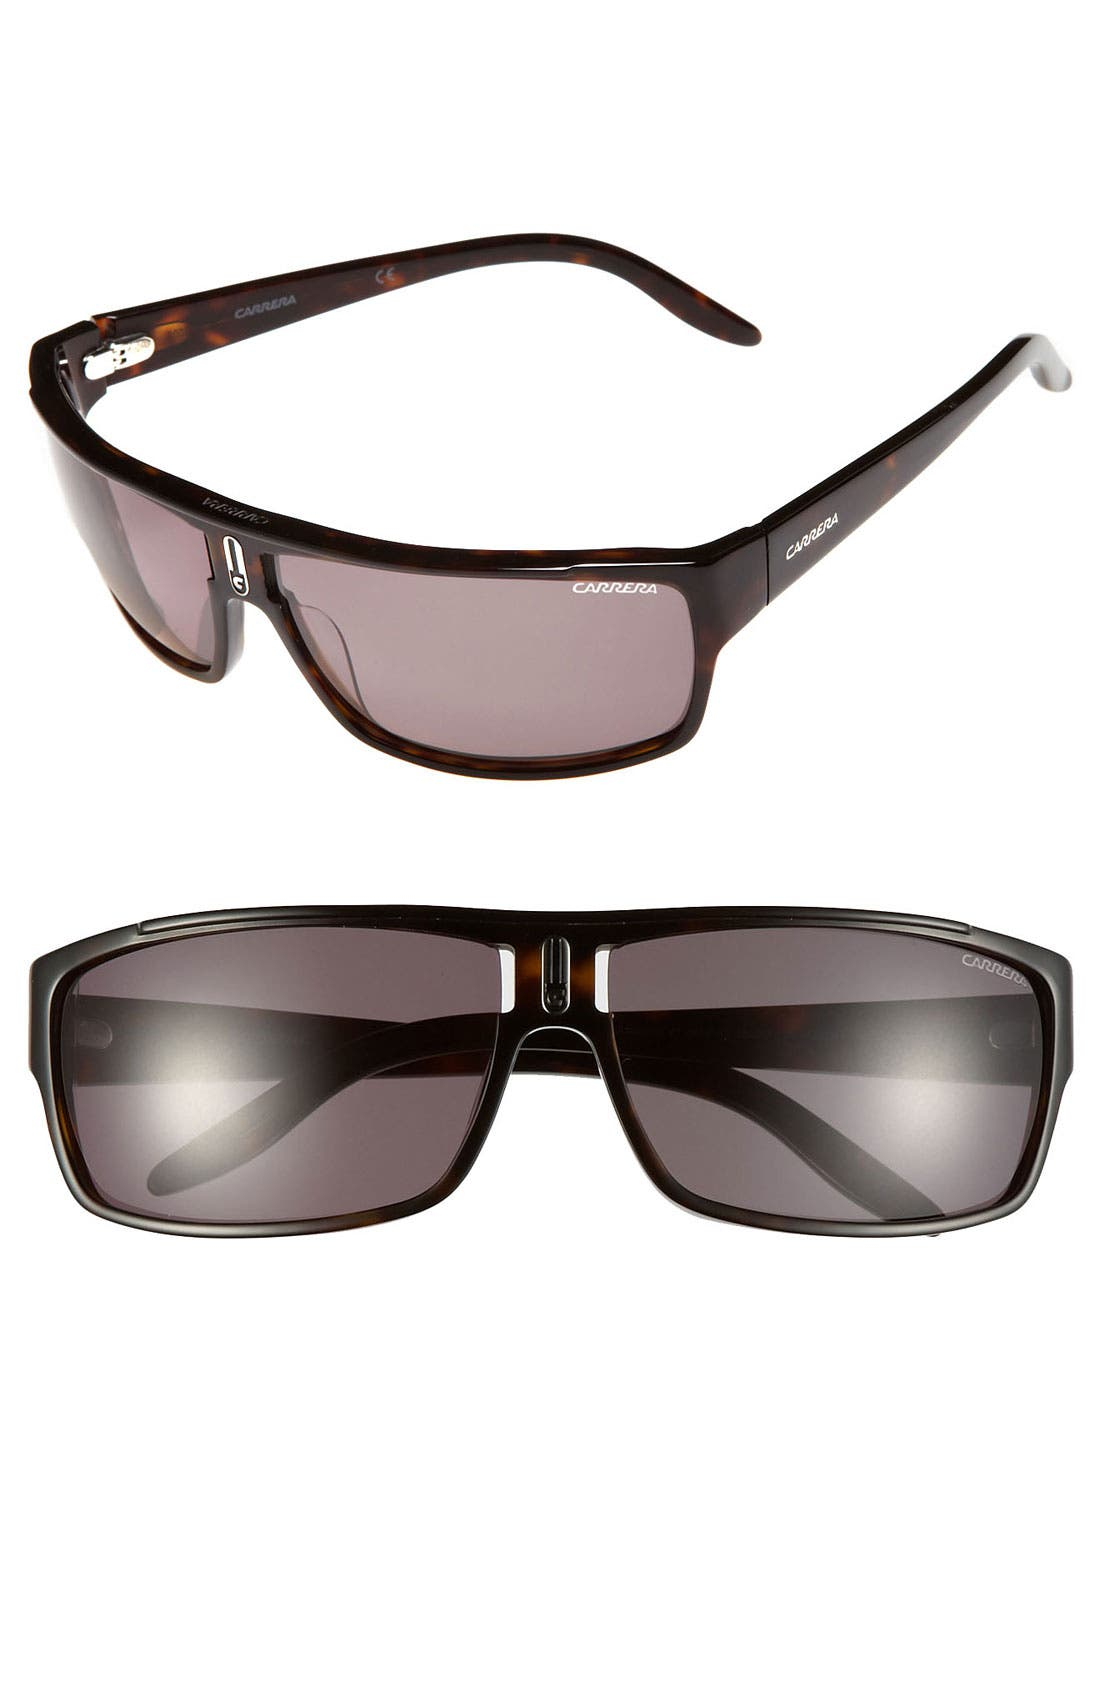 Main Image - Carrera Eyewear 65mm Sunglasses